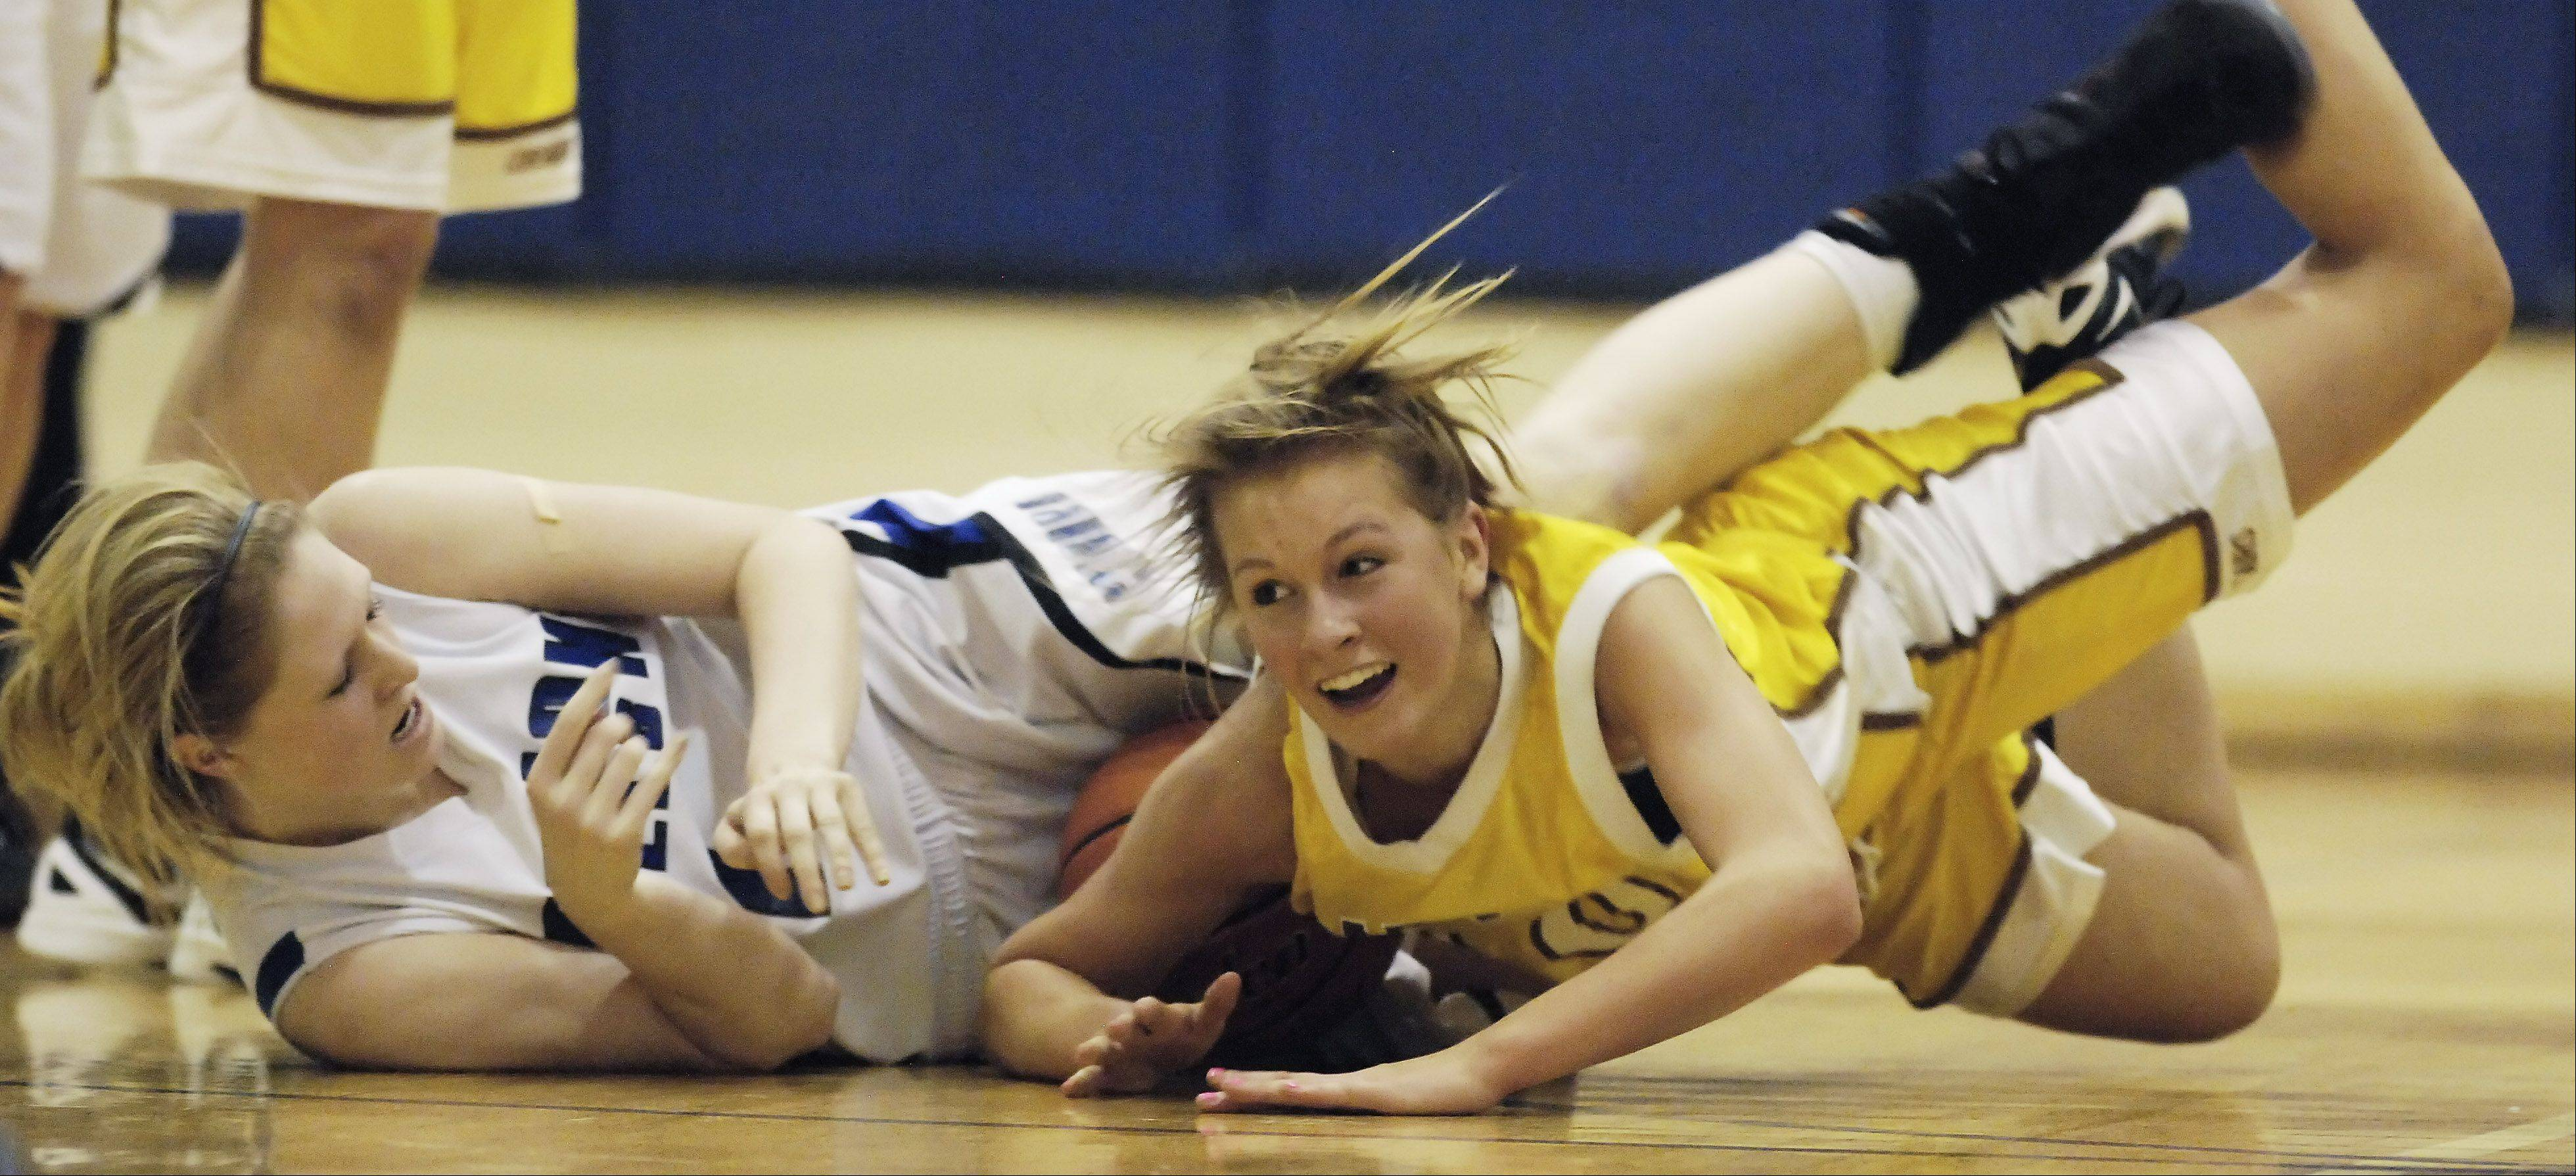 Sydney Smith, left, of Vernon Hills and Leah Lach of Carmel dive to the floor after the ball.